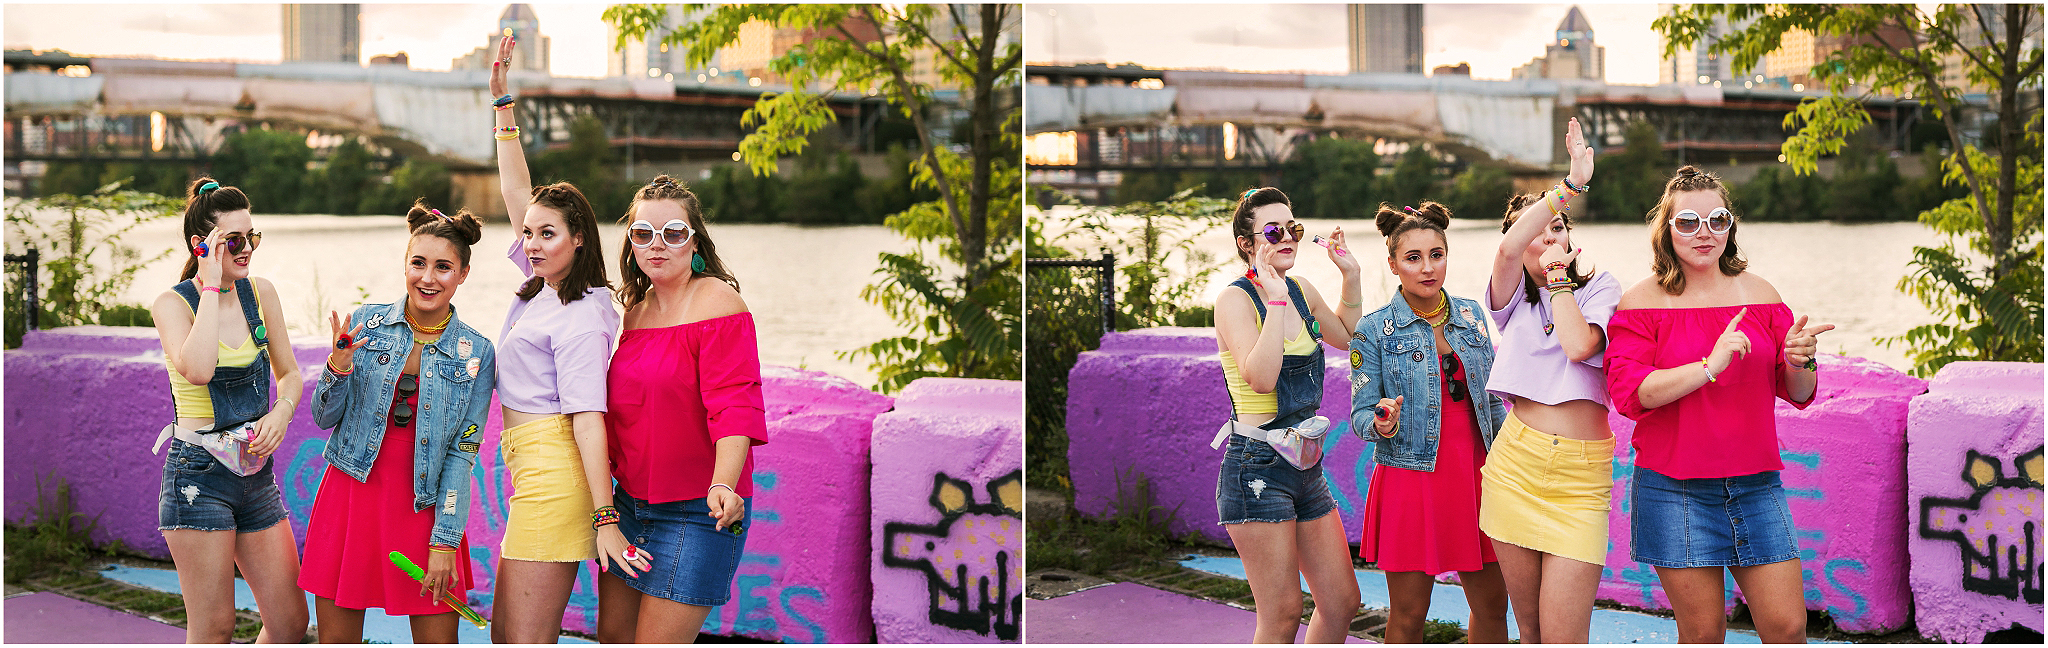 Victoria Irene Photography high school senior representative lisa frank group styled photoshoot at the color park in pittsburgh, Pa